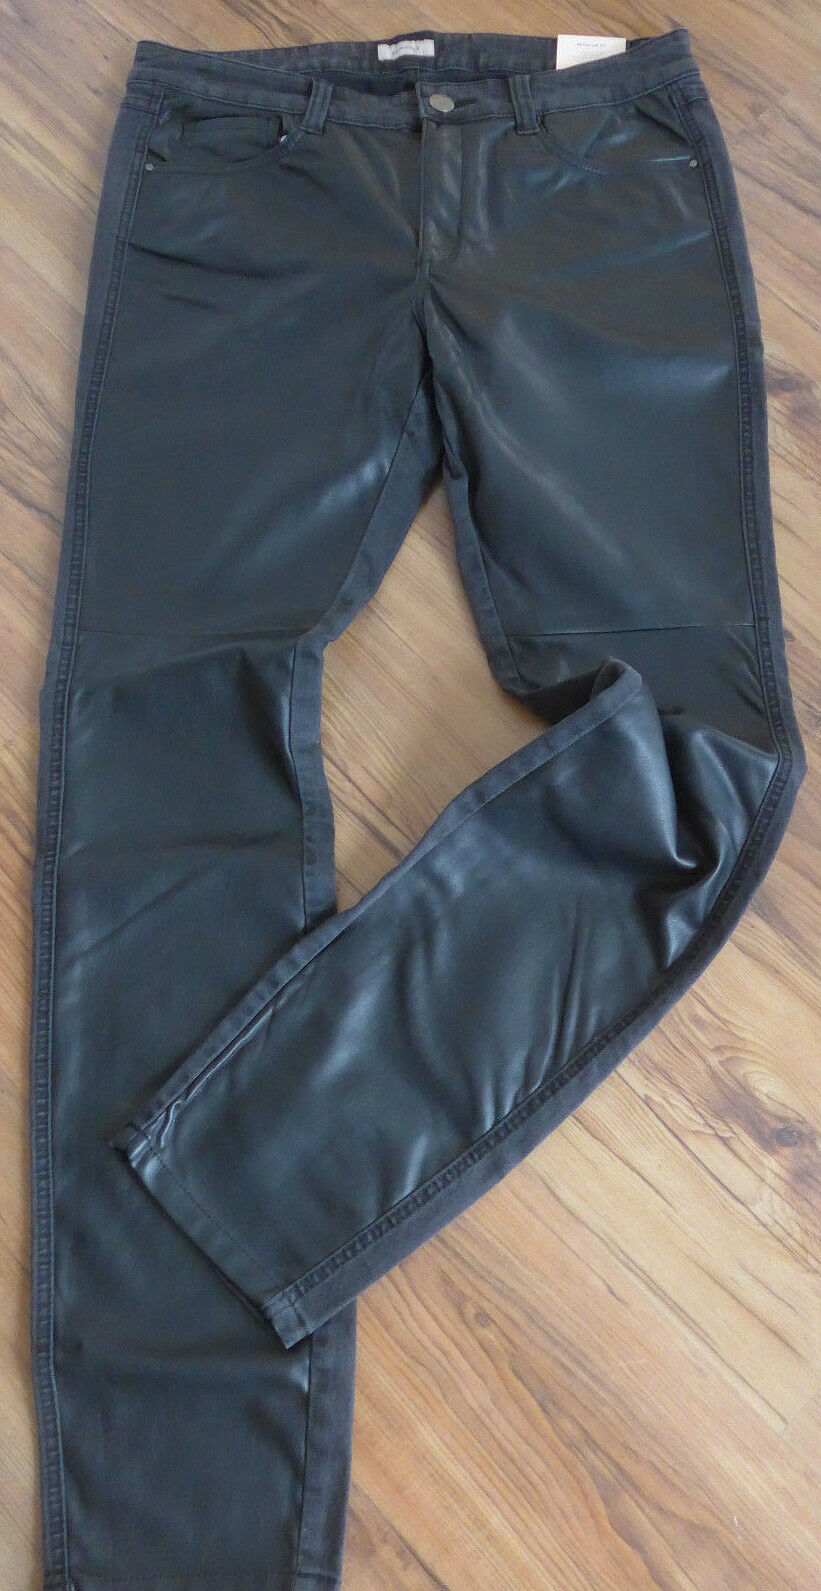 TRIANGLE by S.OLIVER Jeans Trousers Front Imitation Leather Size 42 - 46 (620)